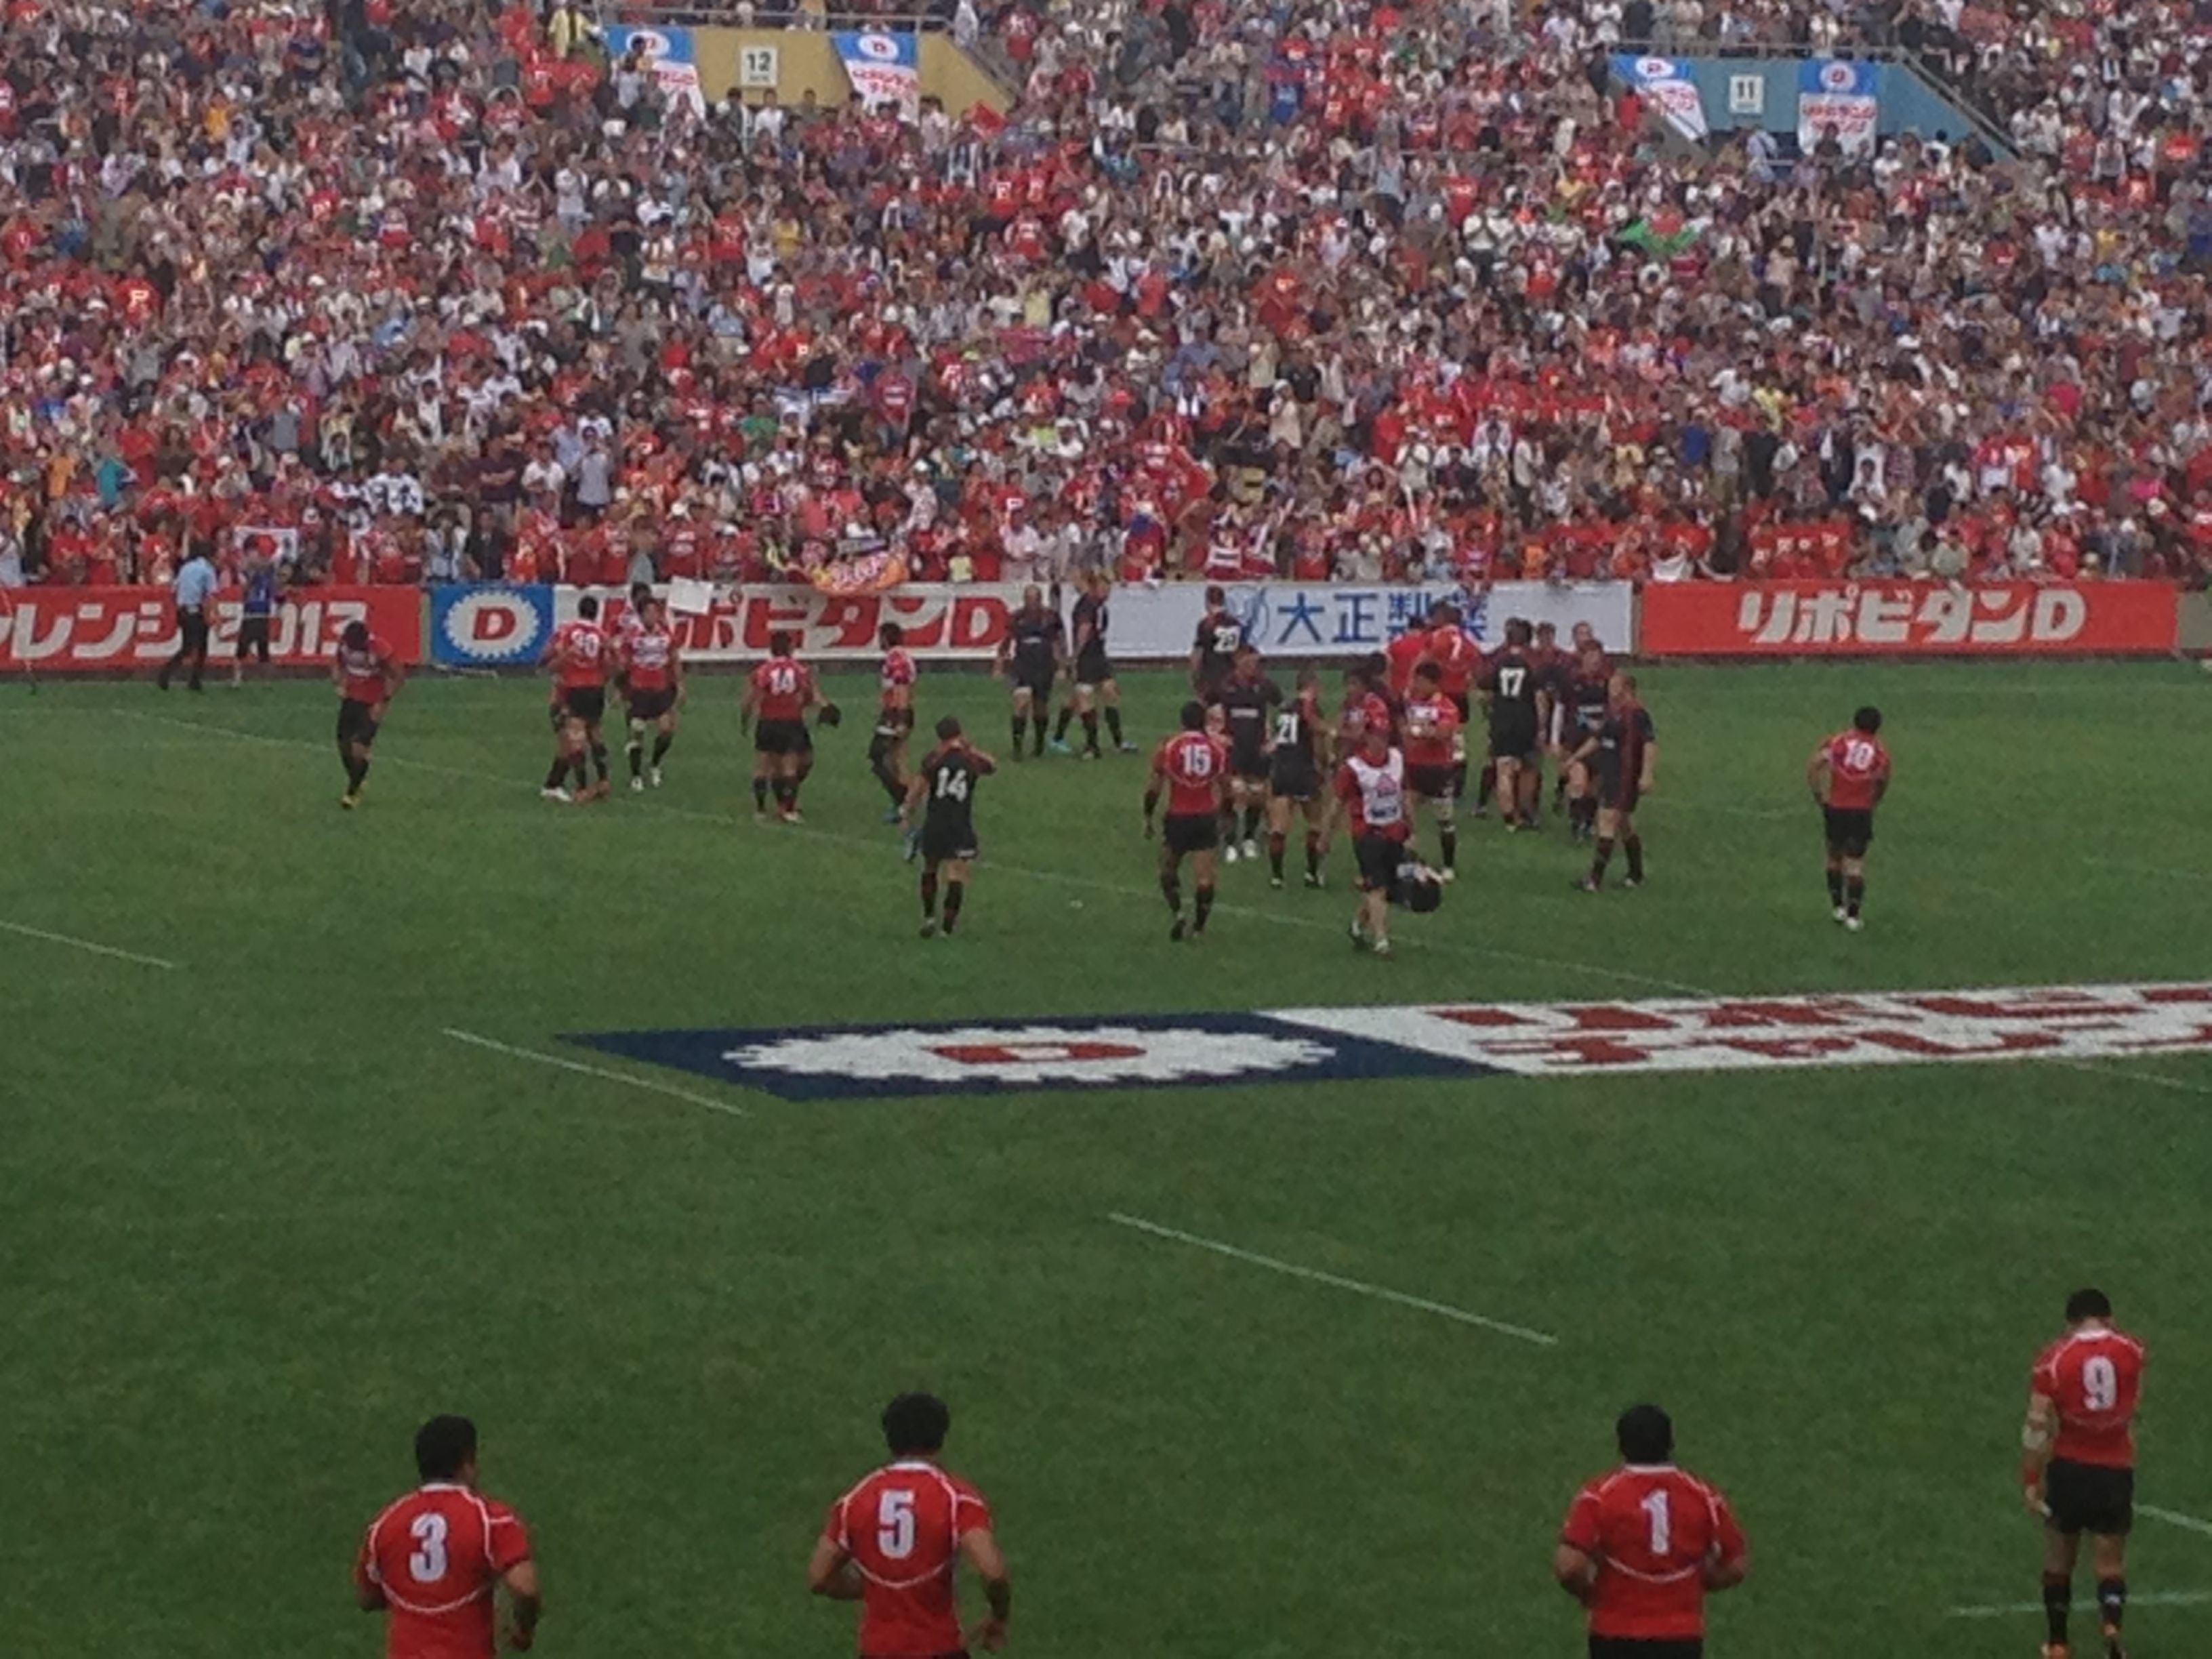 Japan vs Wales - Japan celebrating their first ever win against Wales